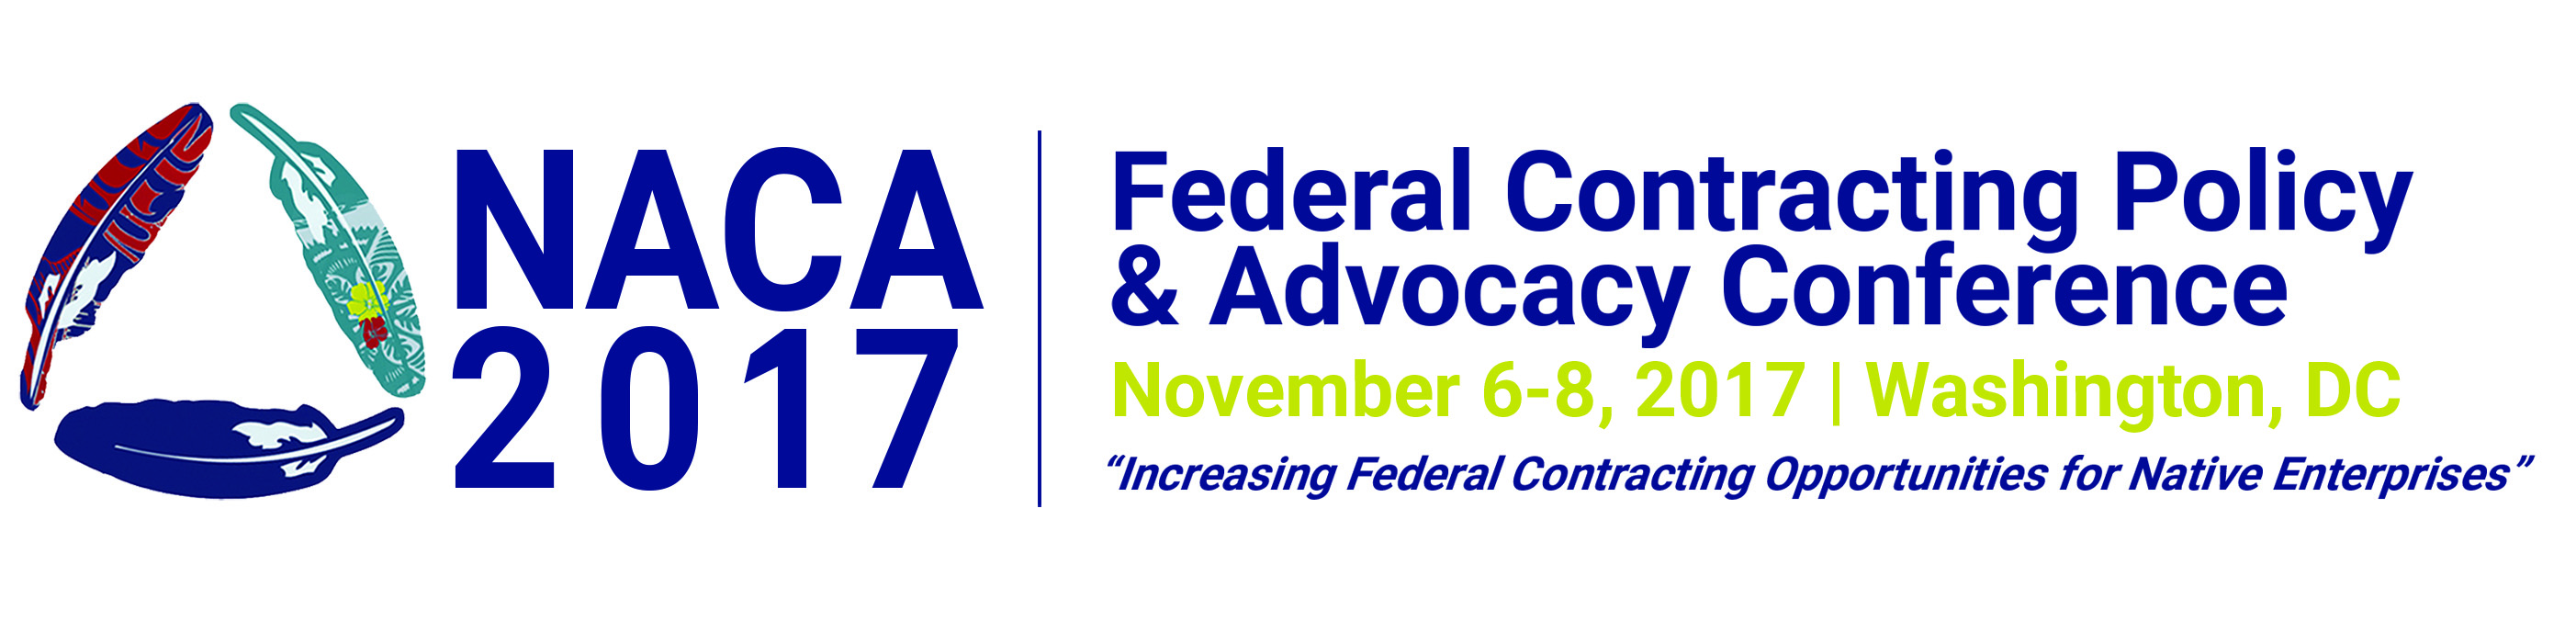 NACA 2017 Federal Contracting Policy and Advocacy Conference